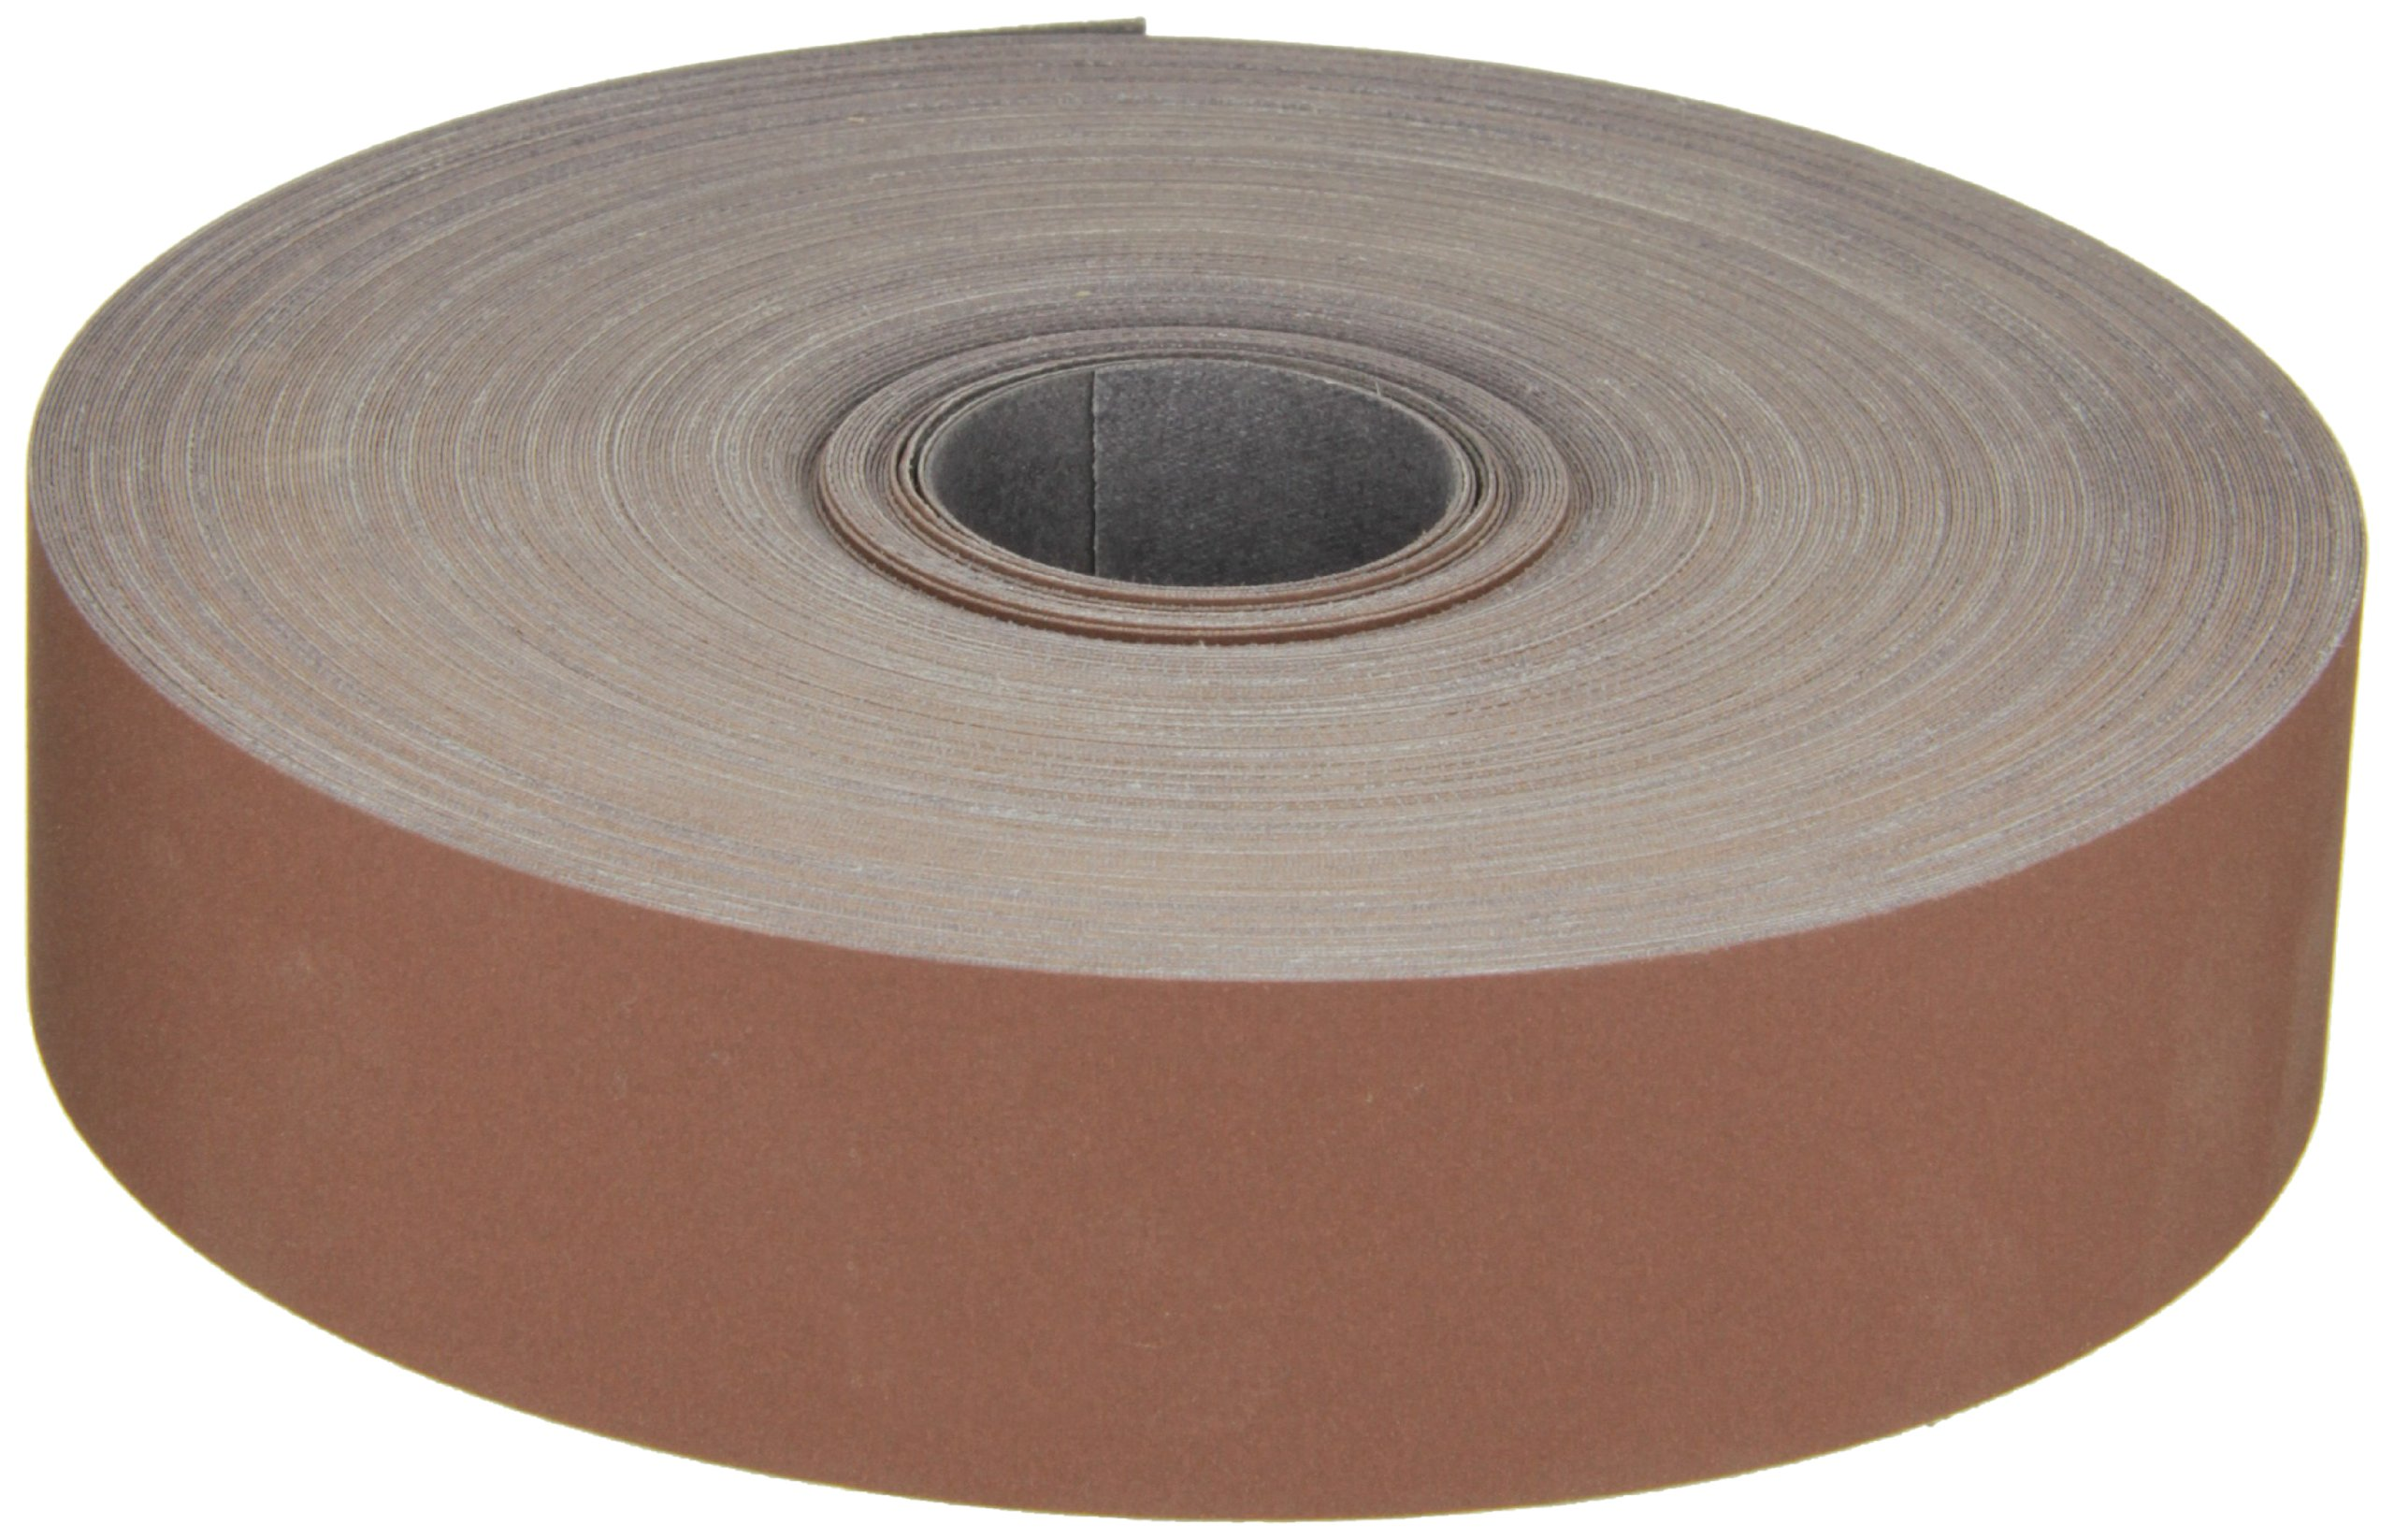 3M Utility Cloth Roll 314D, Aluminum Oxide, 1-1/2'' Width x 50 yds Length, P400 Grit, Maroon (Pack of 1)